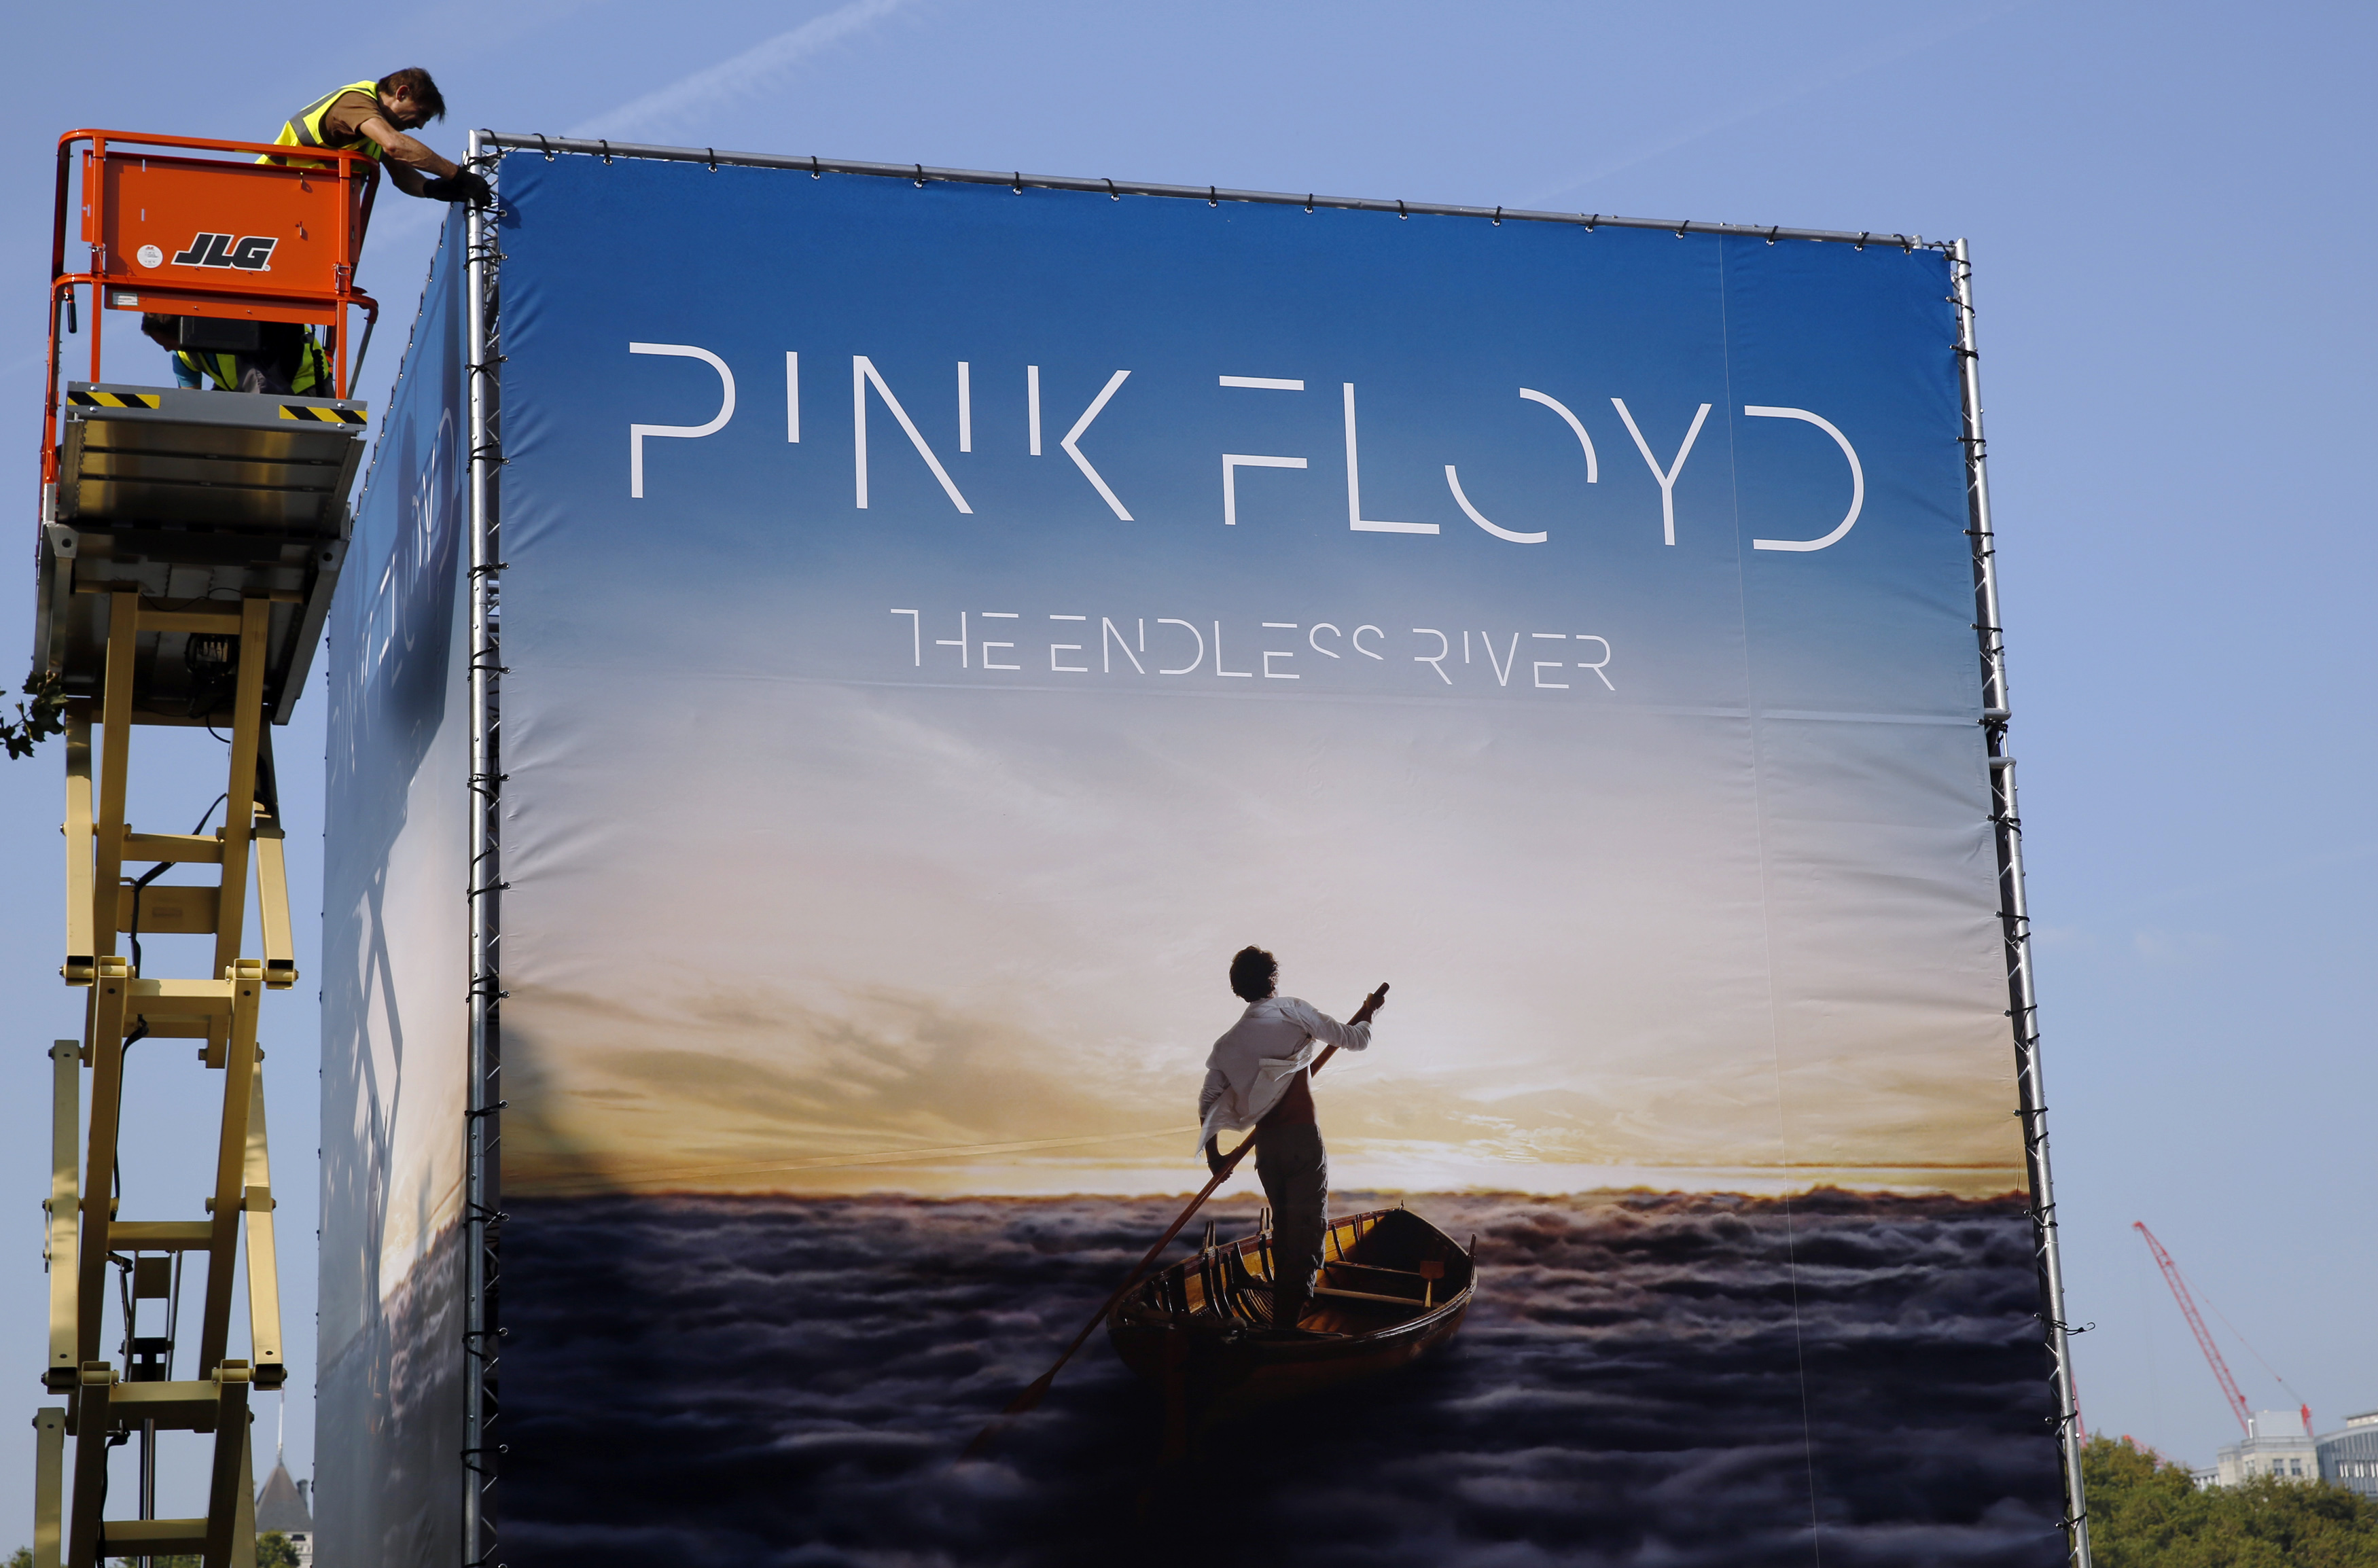 Advertising for the new Pink Floyd album The Endless River is installed on a four-sided billboard on in London Sept. 22, 2014